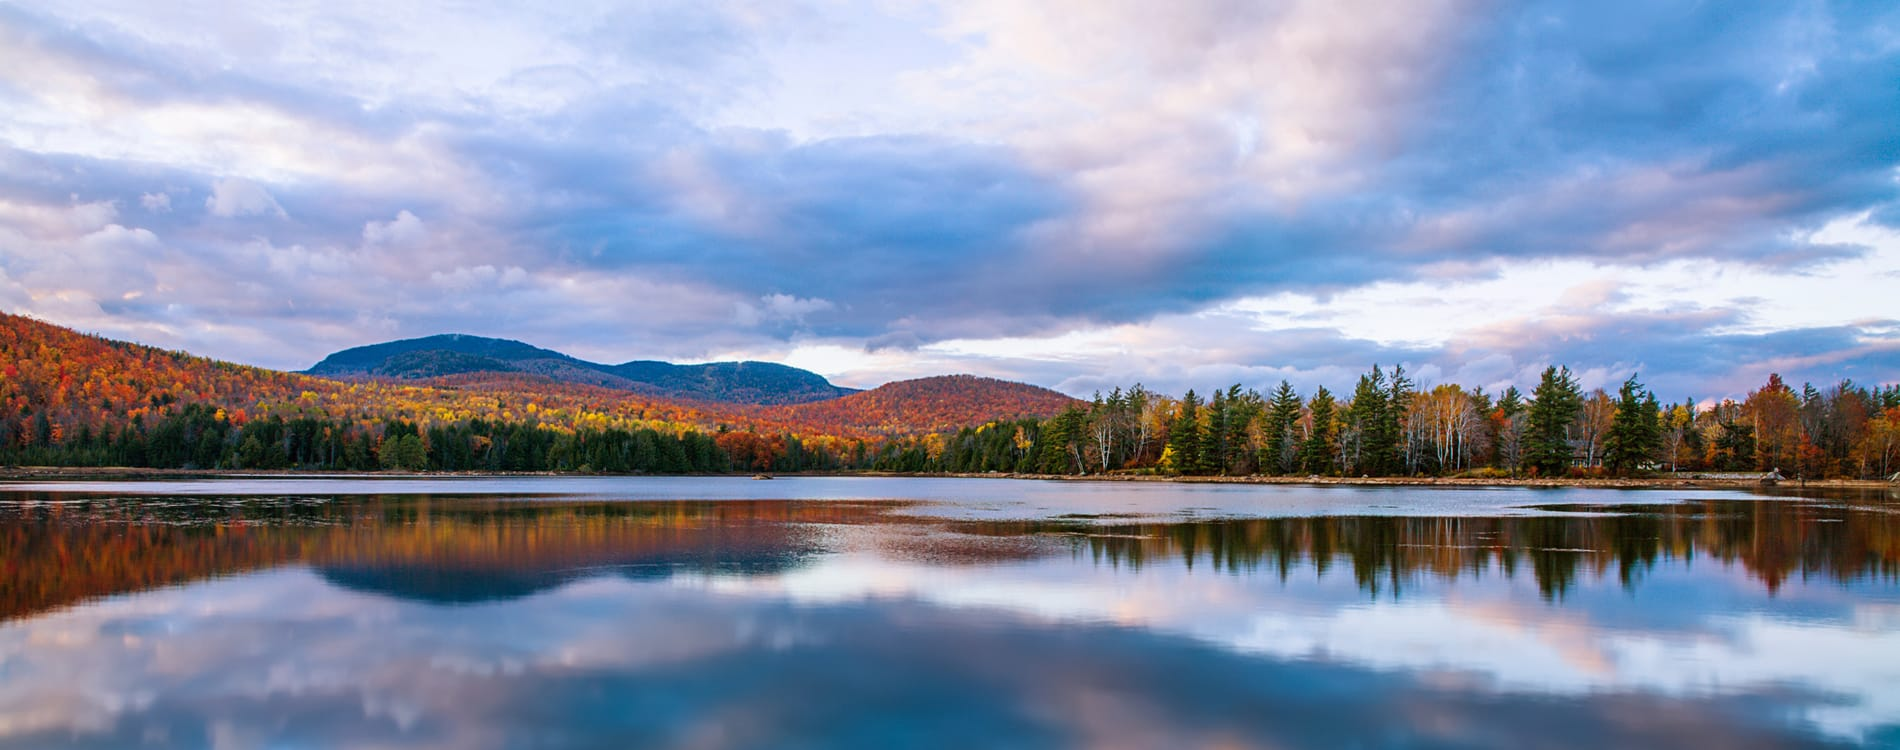 Adirondacks - Loon Lake in the Adirondack Mountains